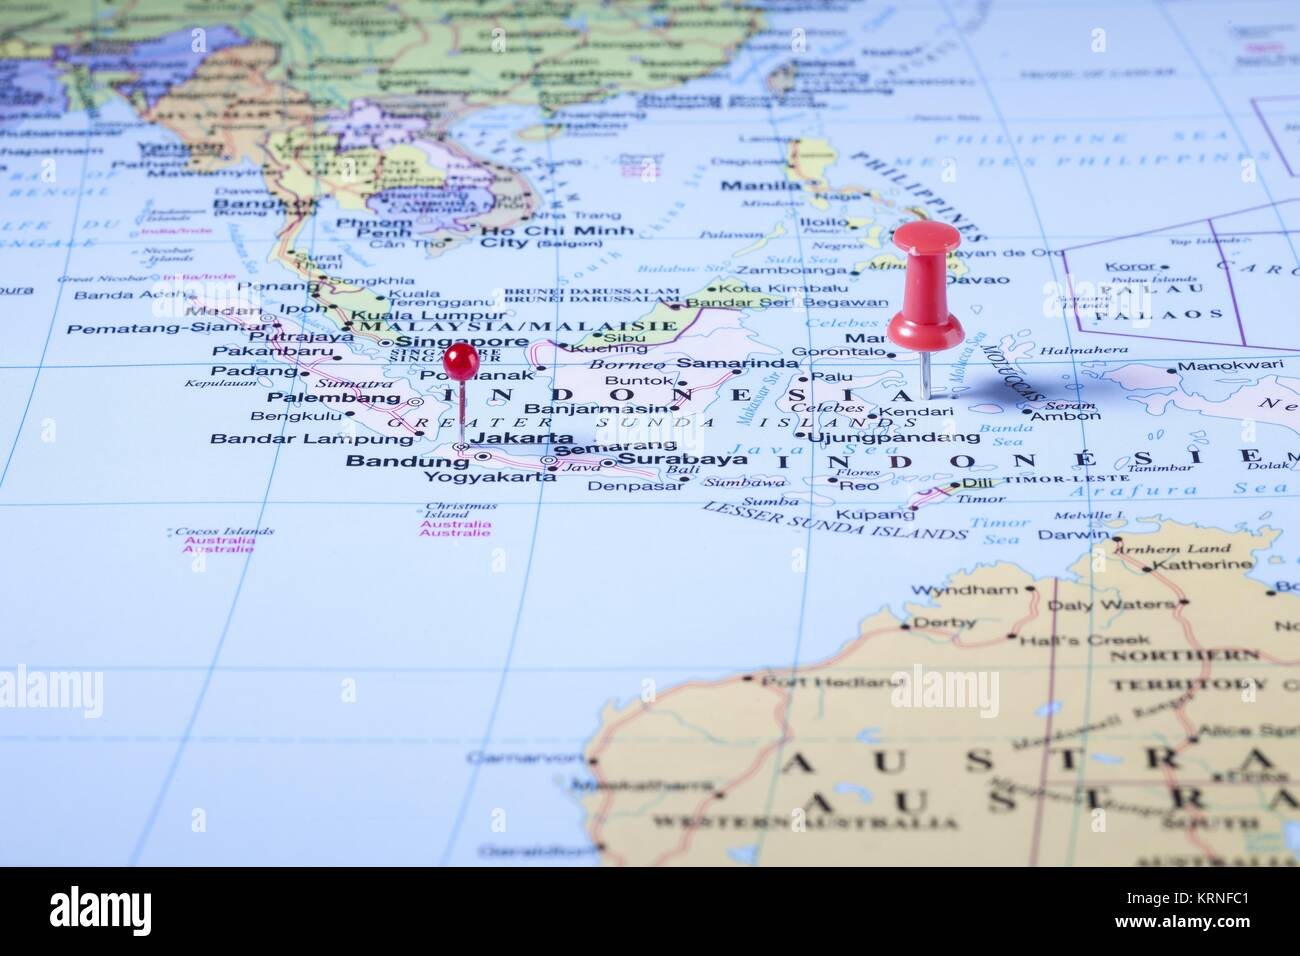 indonesia map with red pin Stock Photo: 169503489 - Alamy